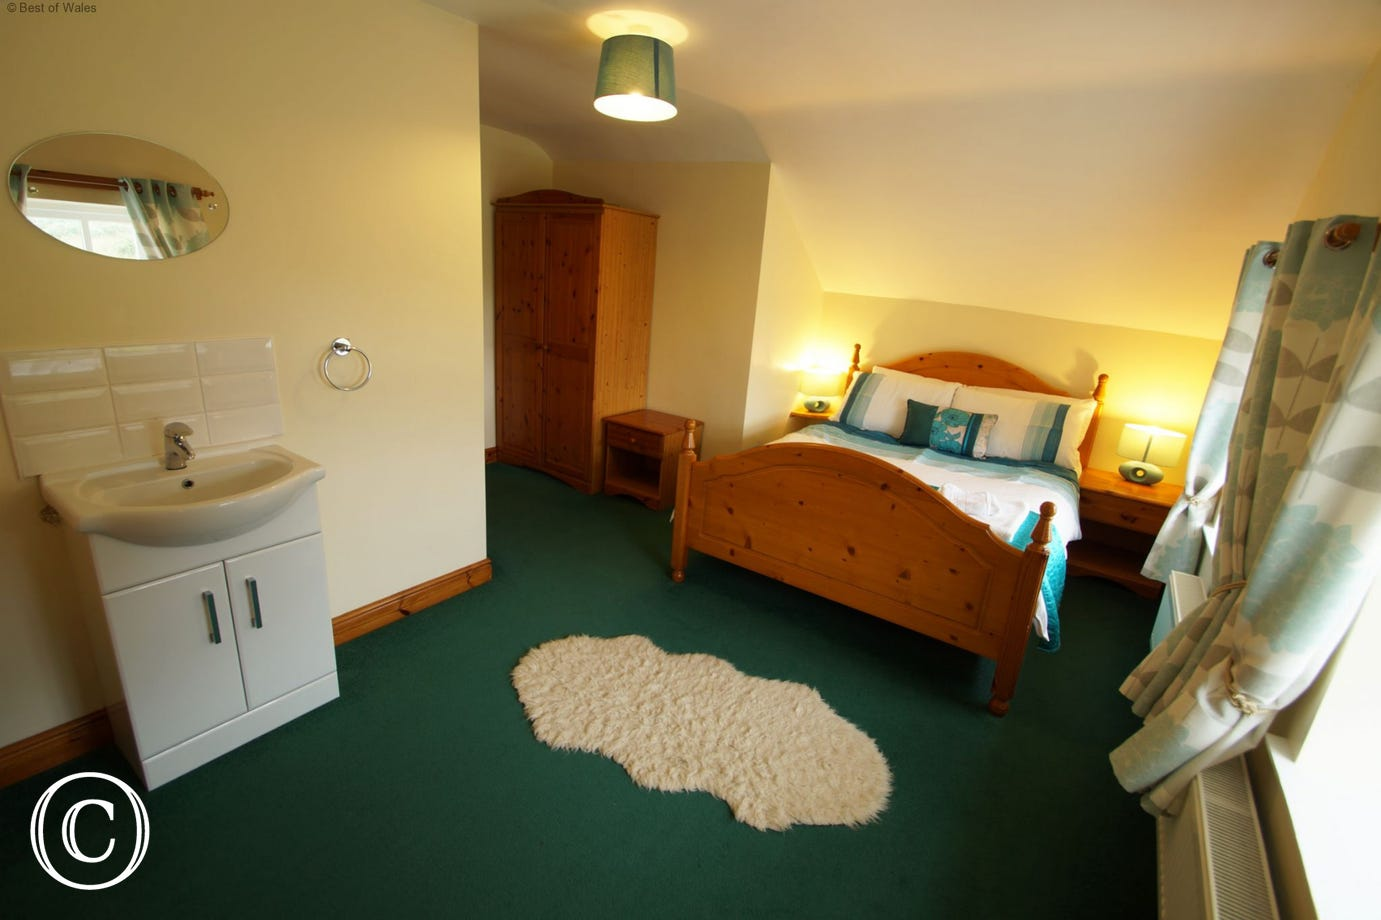 Spacious double bedroom with wash basin